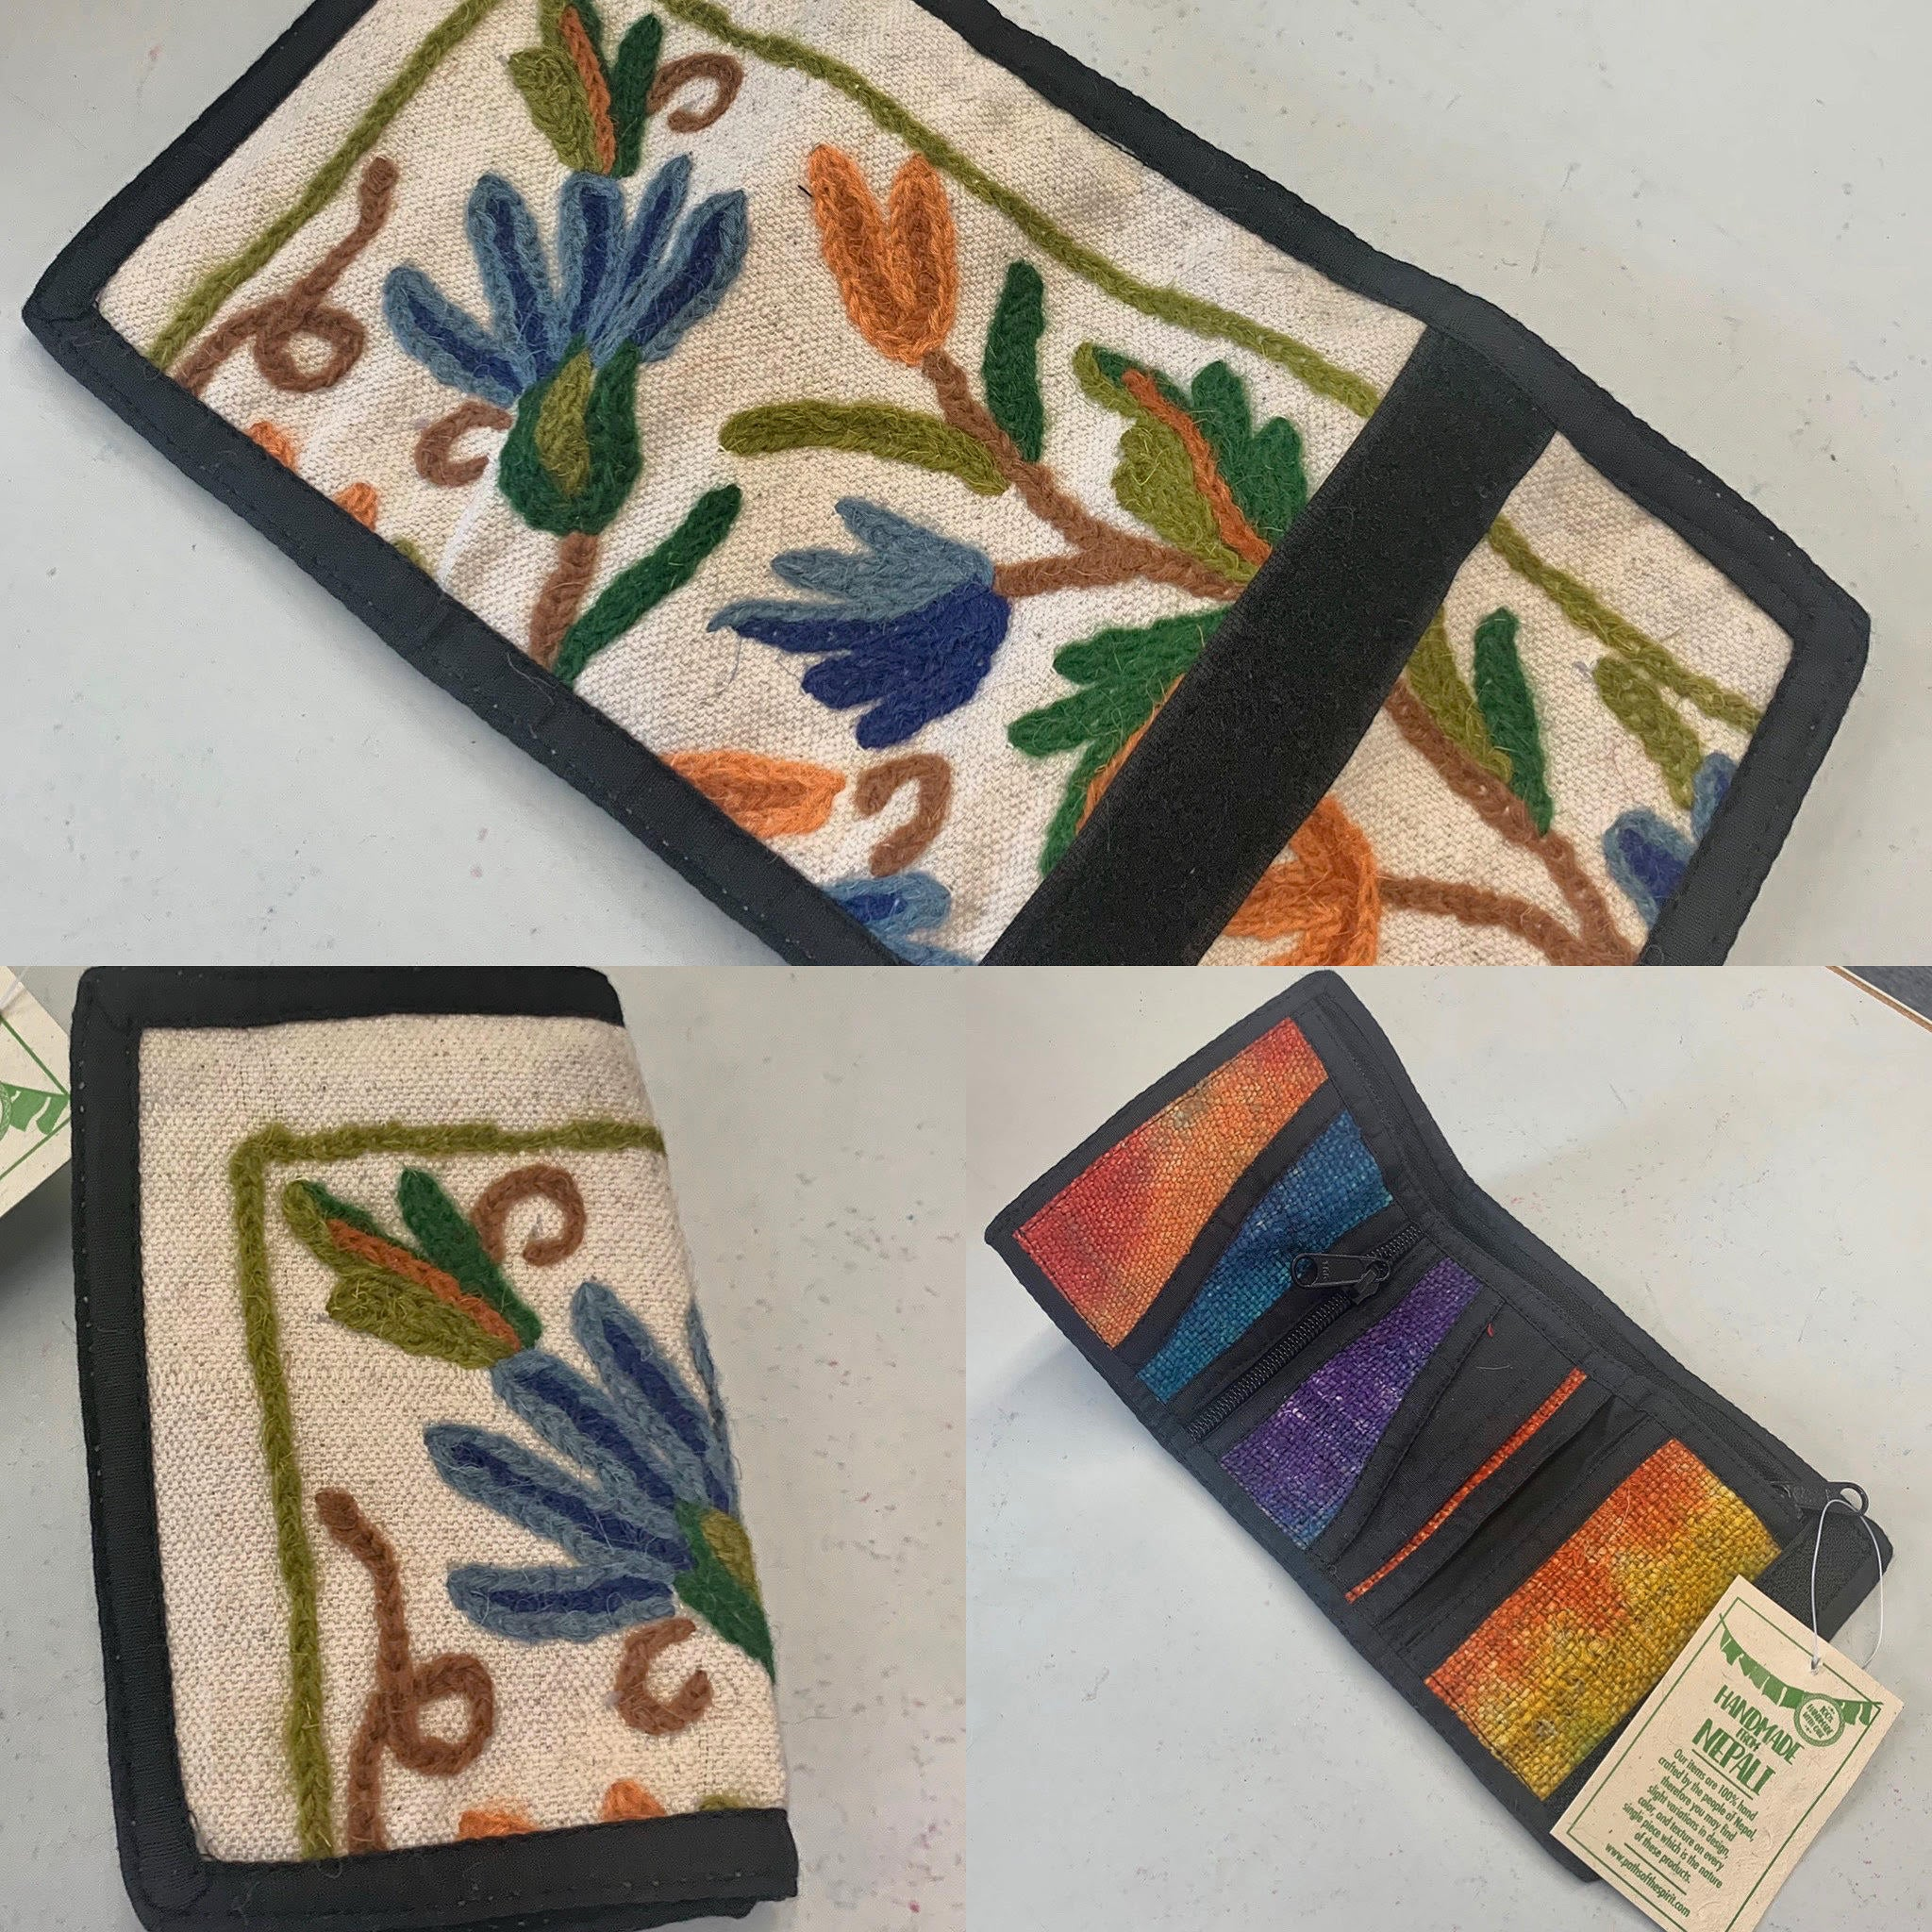 Tri Fold Hand-stitched wallet w/Embroidered Flower - Made in Nepal